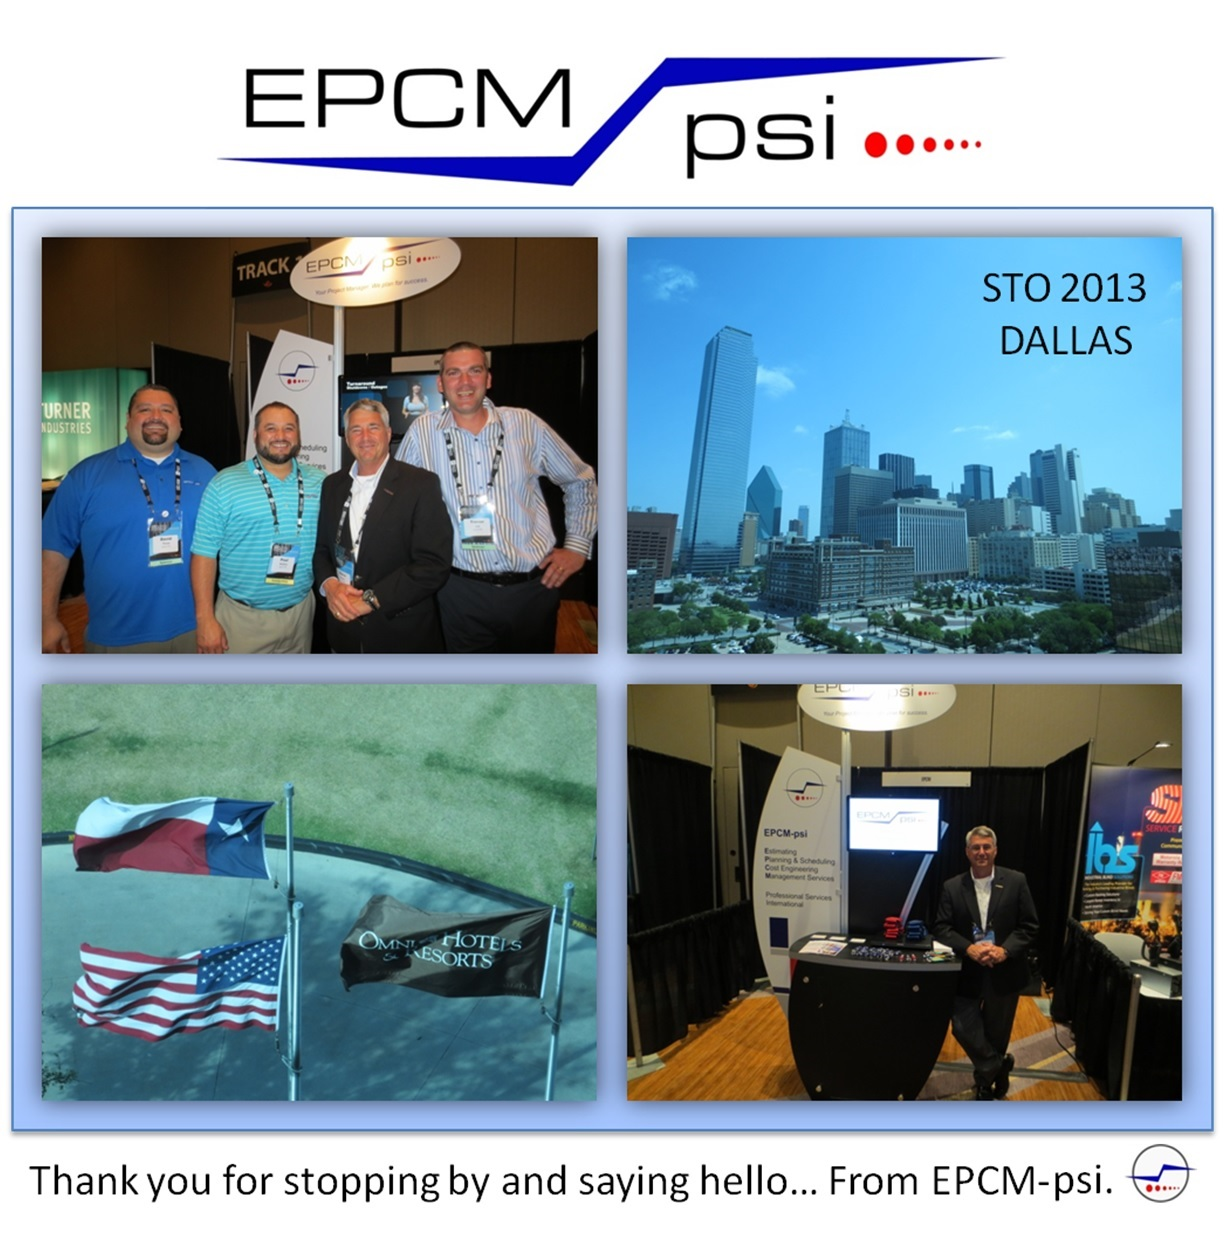 EPCM-psi-STO-2013-Dallas.jpg